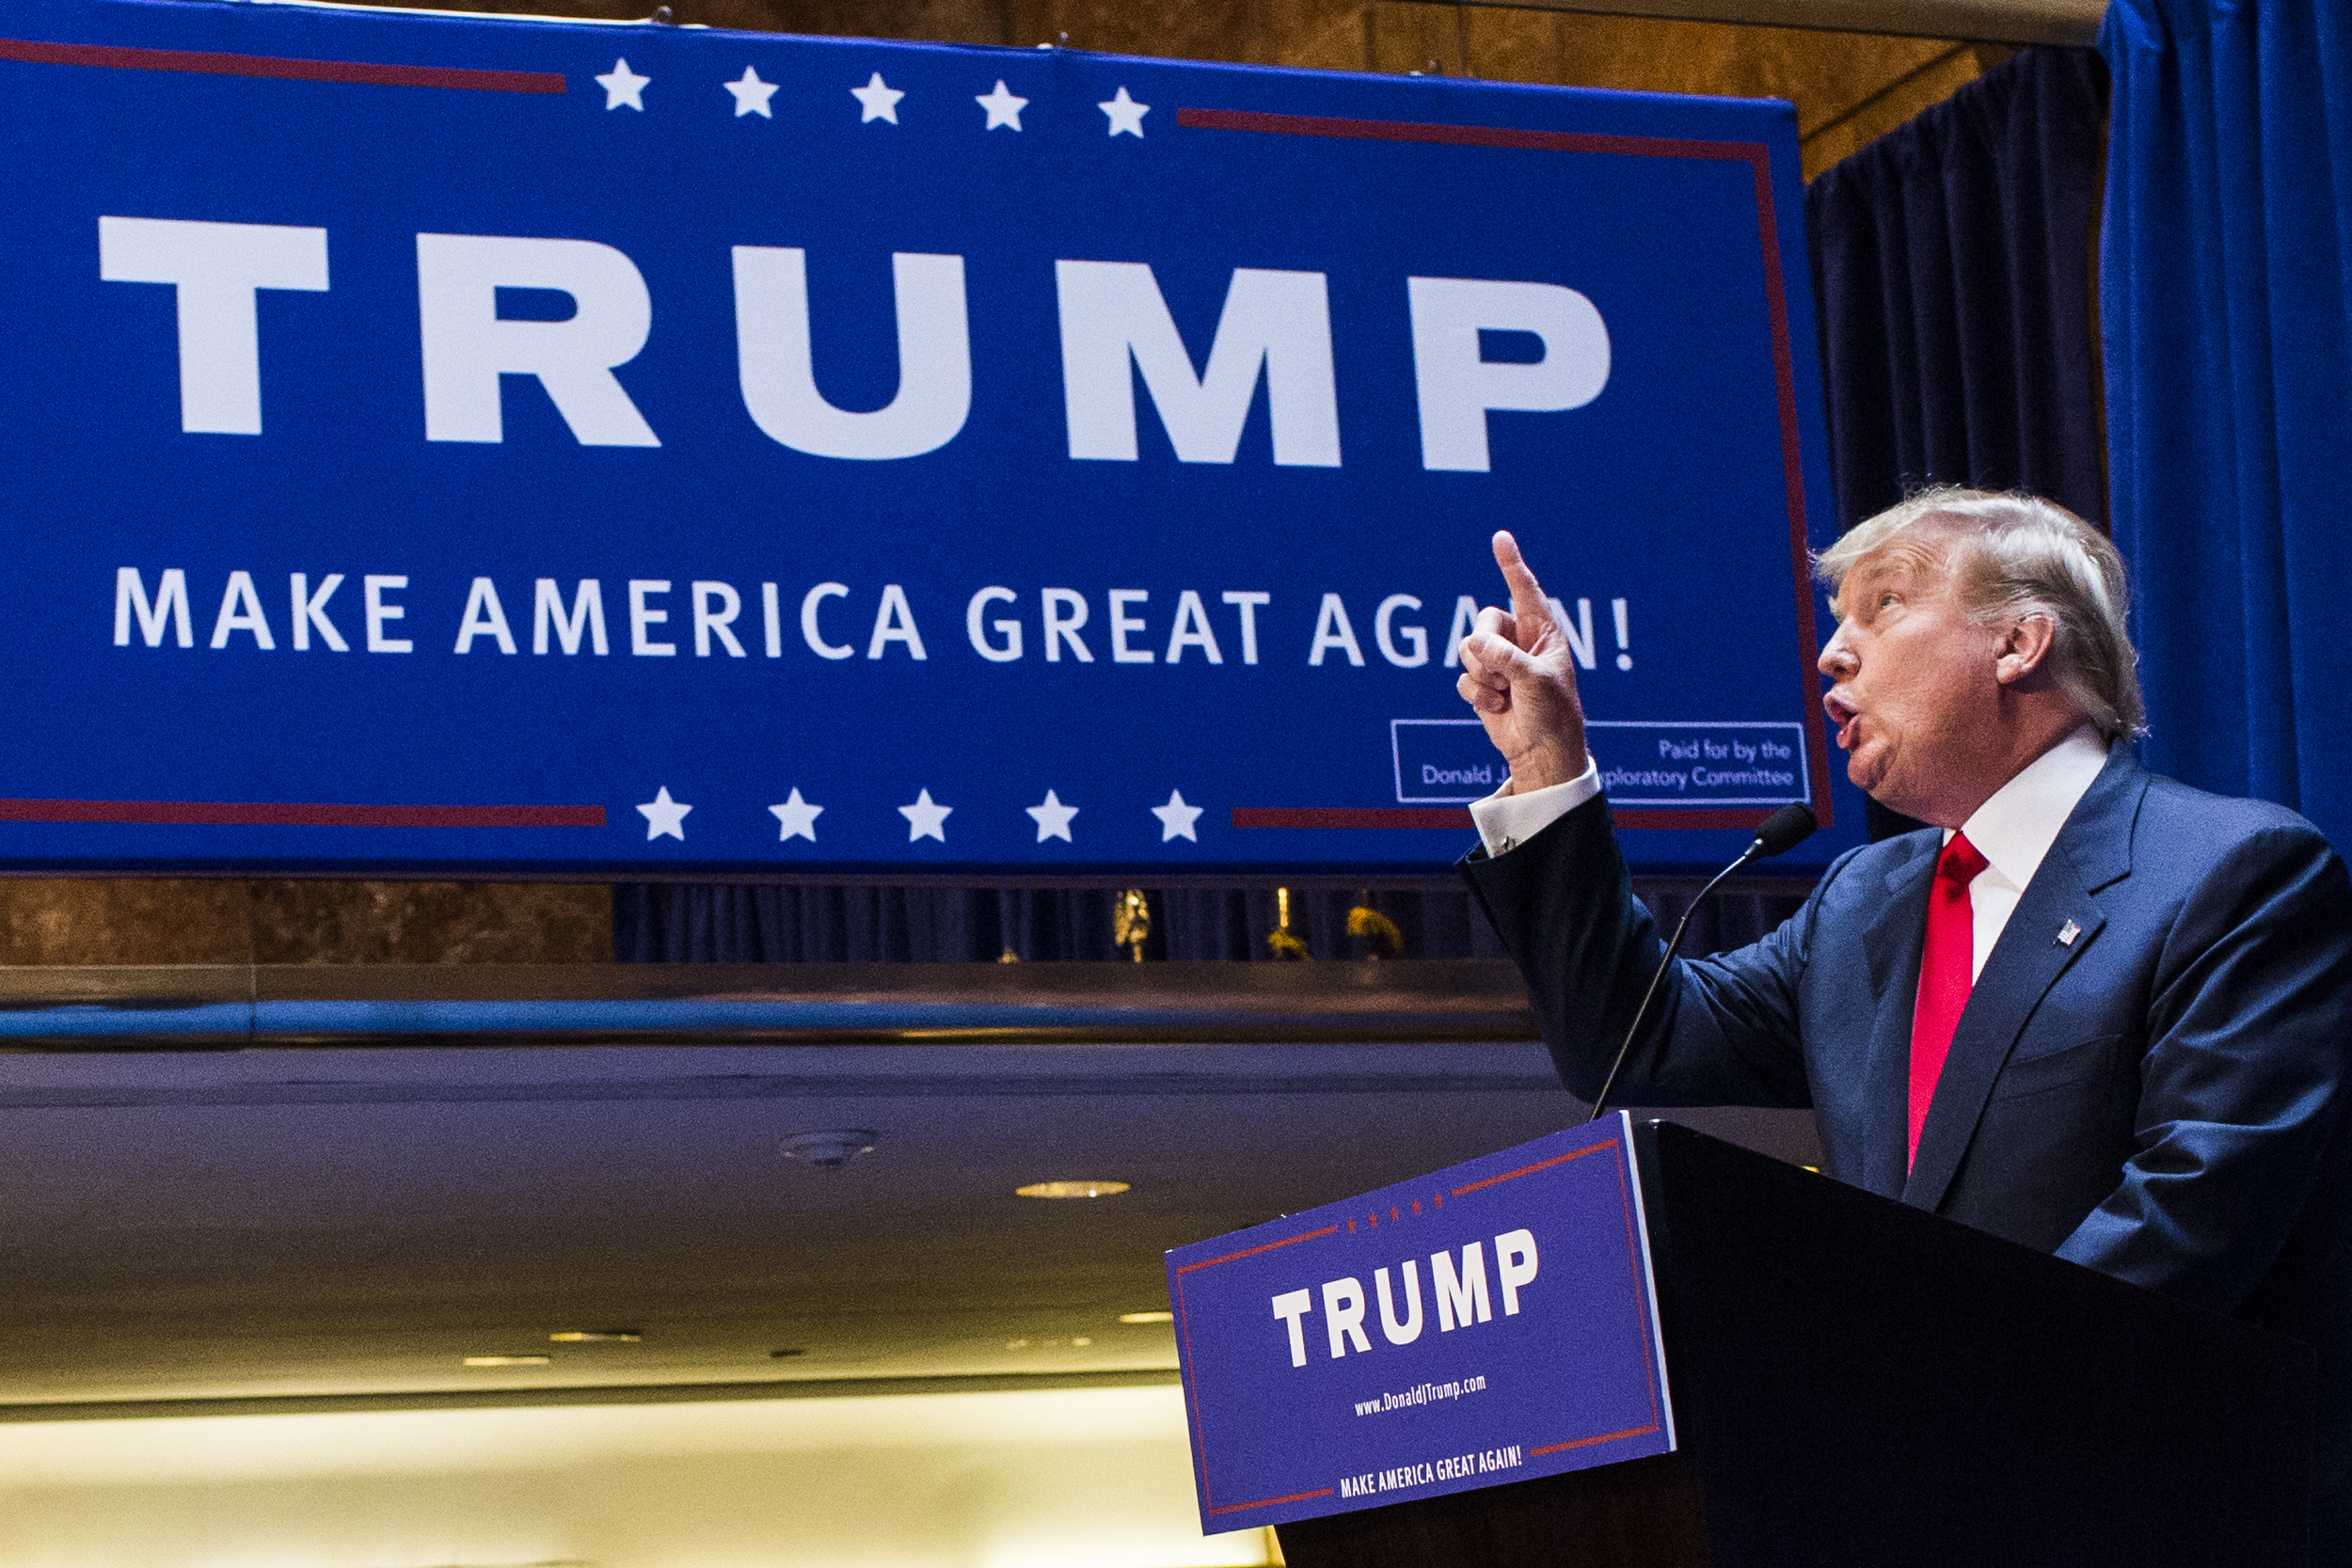 Business mogul Donald Trump points as he gives a speech as he announces his candidacy for the U.S. presidency at Trump Tower on June 16, 2015 in New York City.  Trump is the 12th